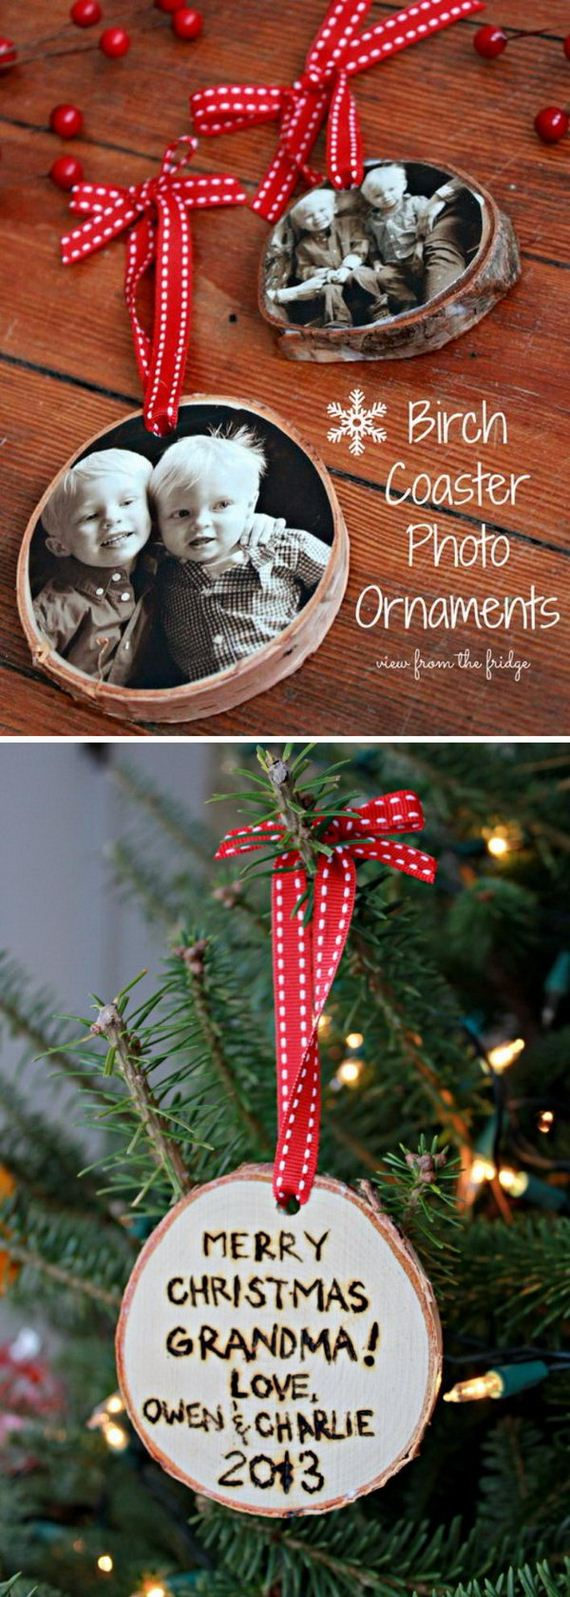 10-photos-cards-christmas